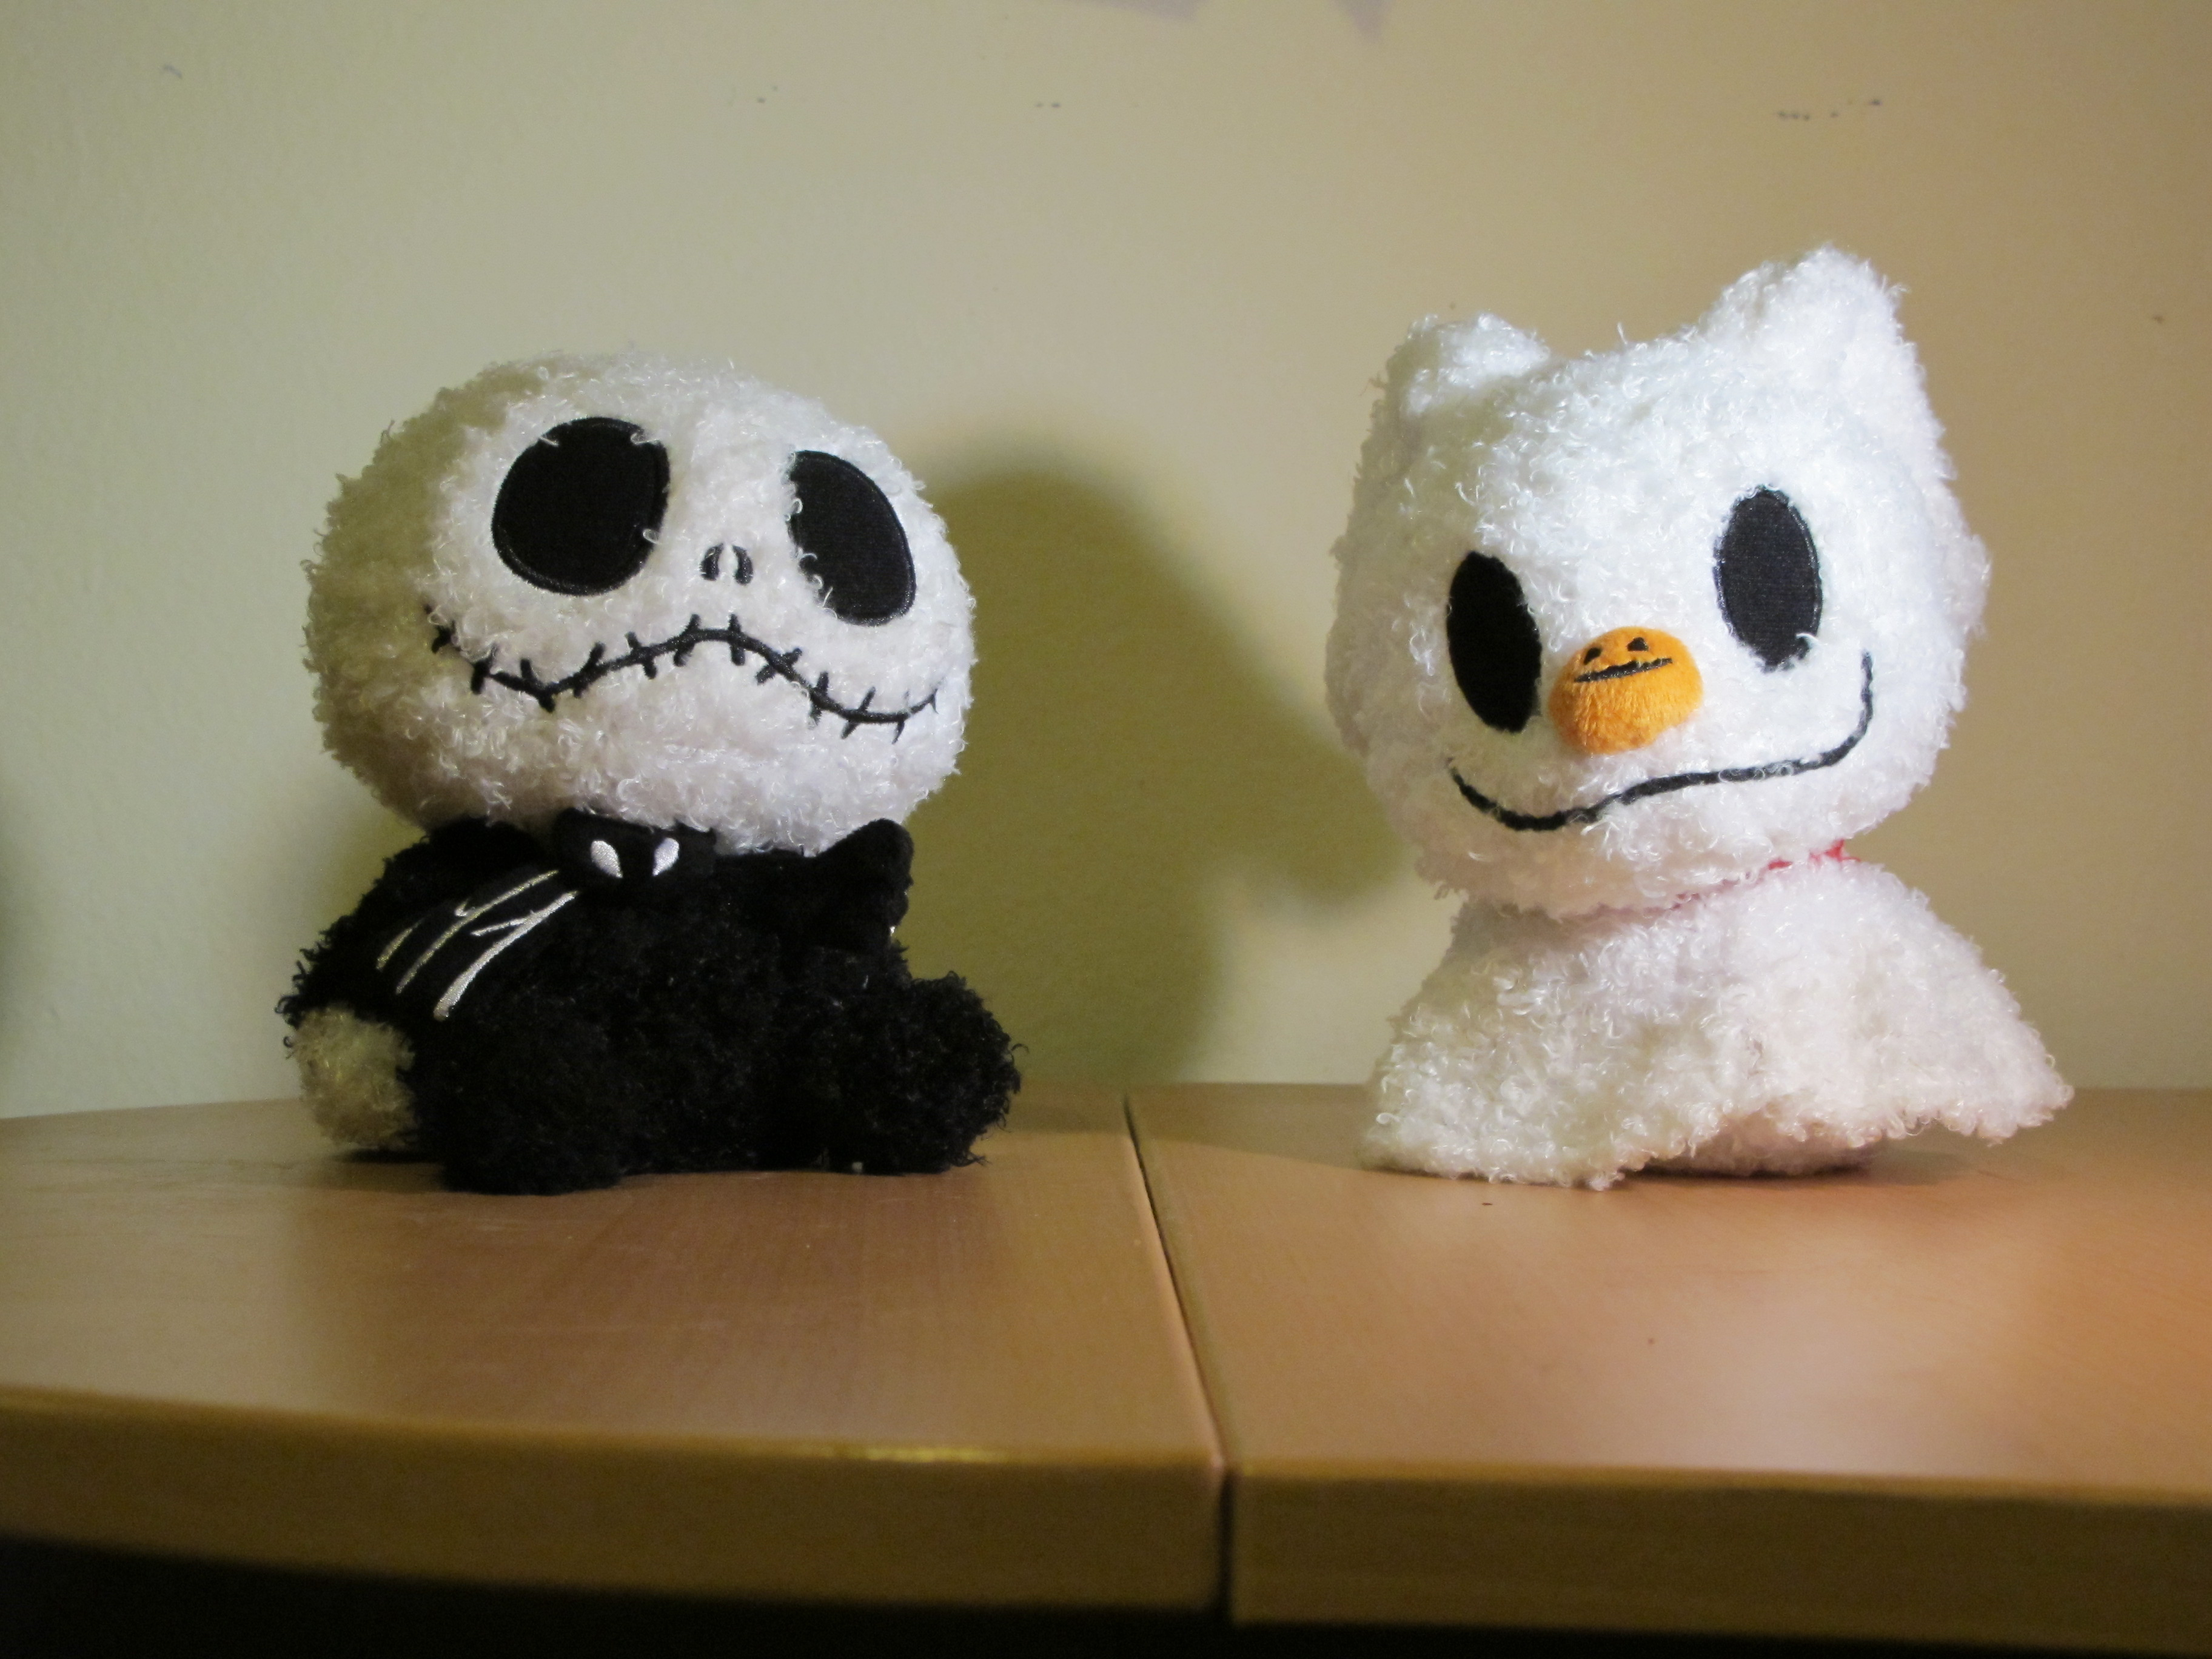 baby jack skellington and baby zero i own a few plush nightmare before christmas